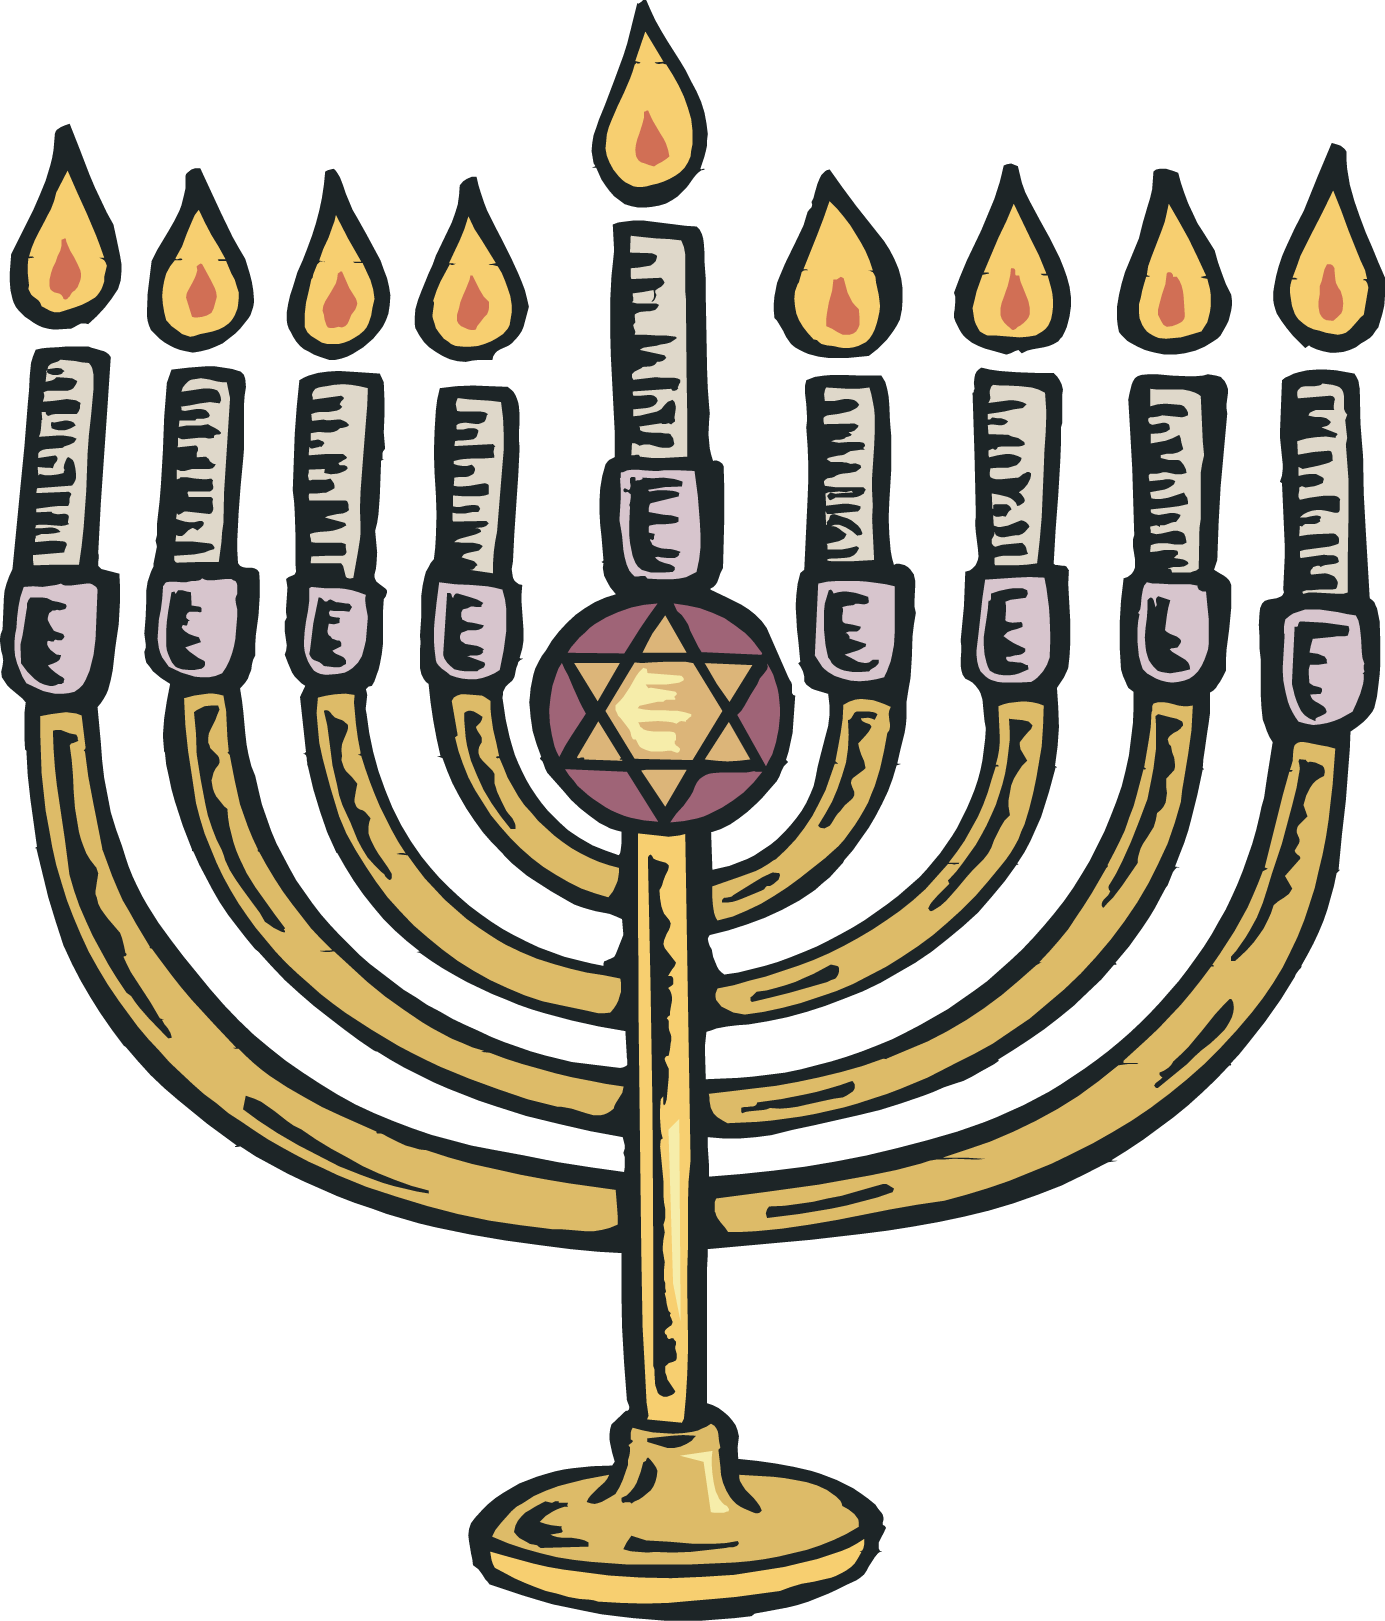 Menorah Image - Clipart library